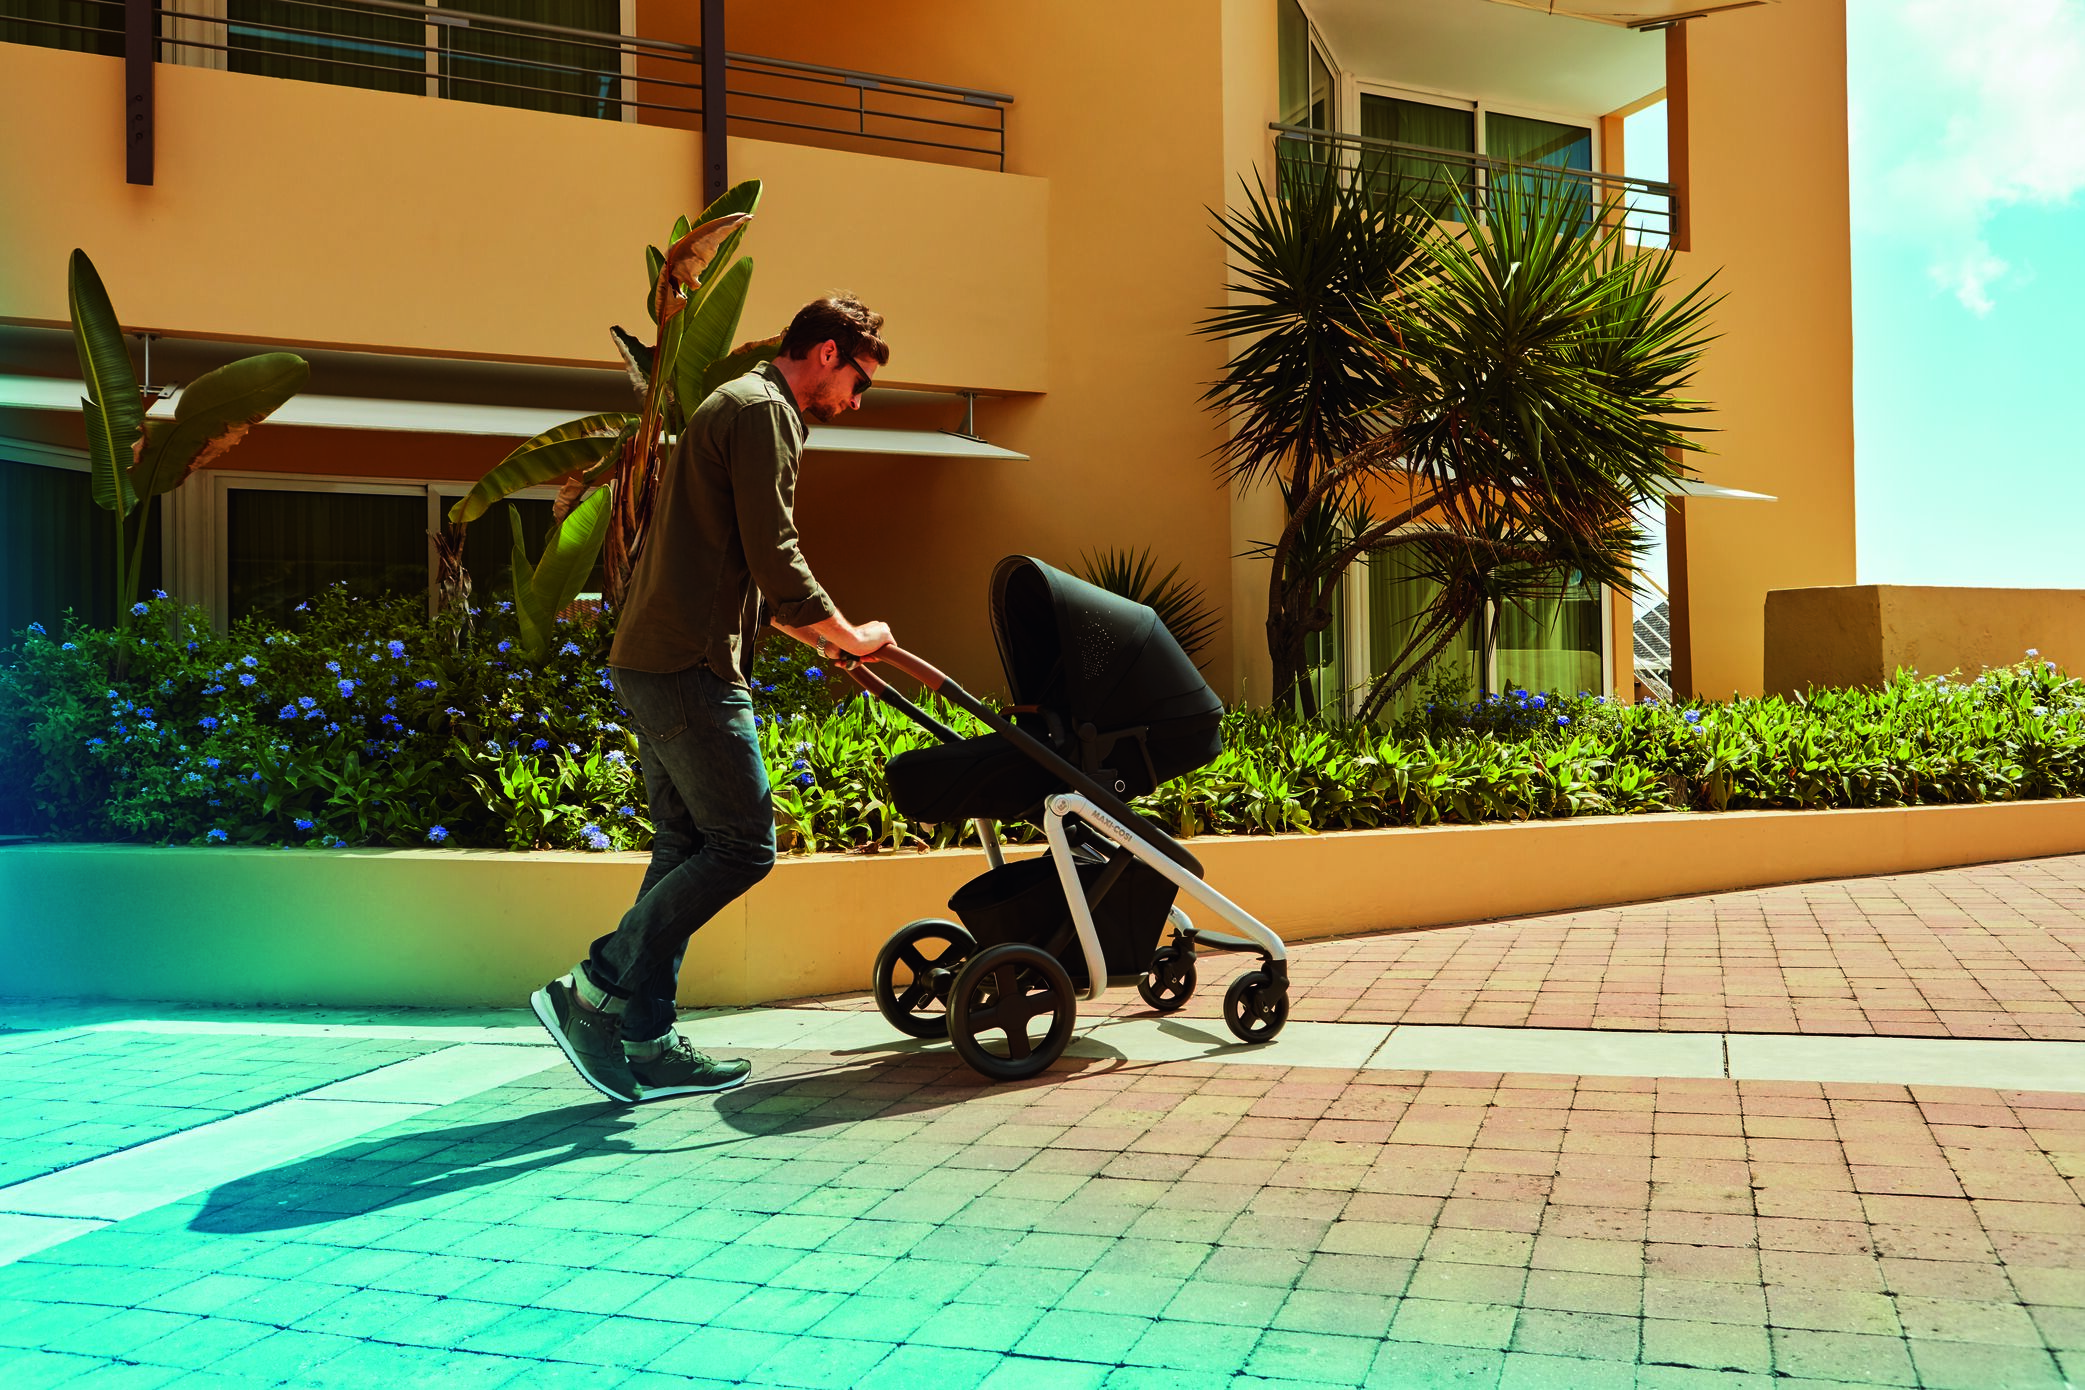 MC1311_2018_Maxicosi_Stroller_Lila_Lifestyle_Fatherstrollingwithbaby_Landscape